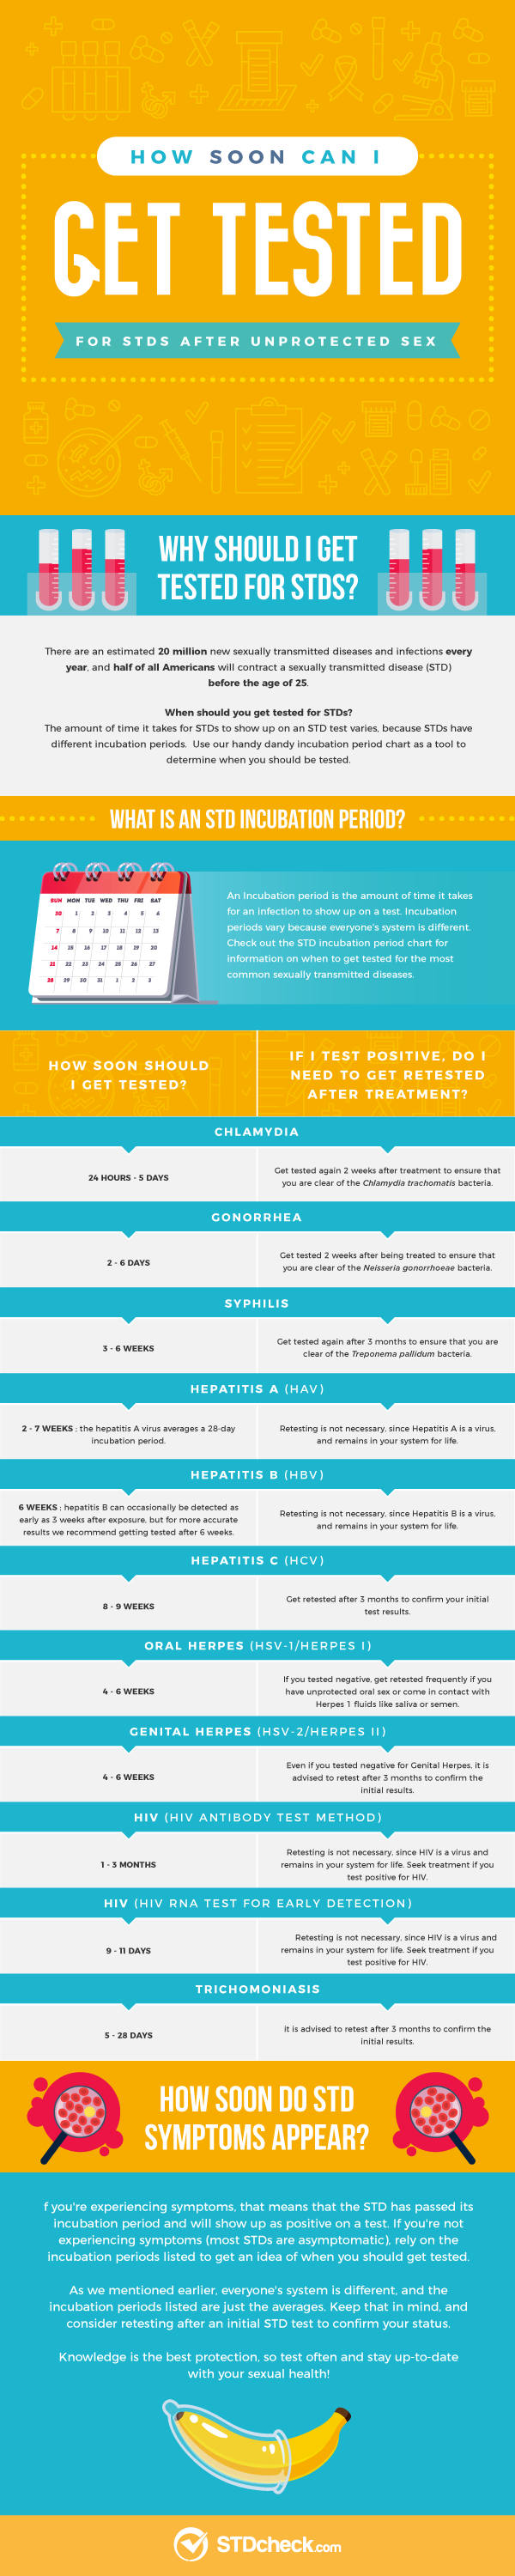 How soon to test infographic